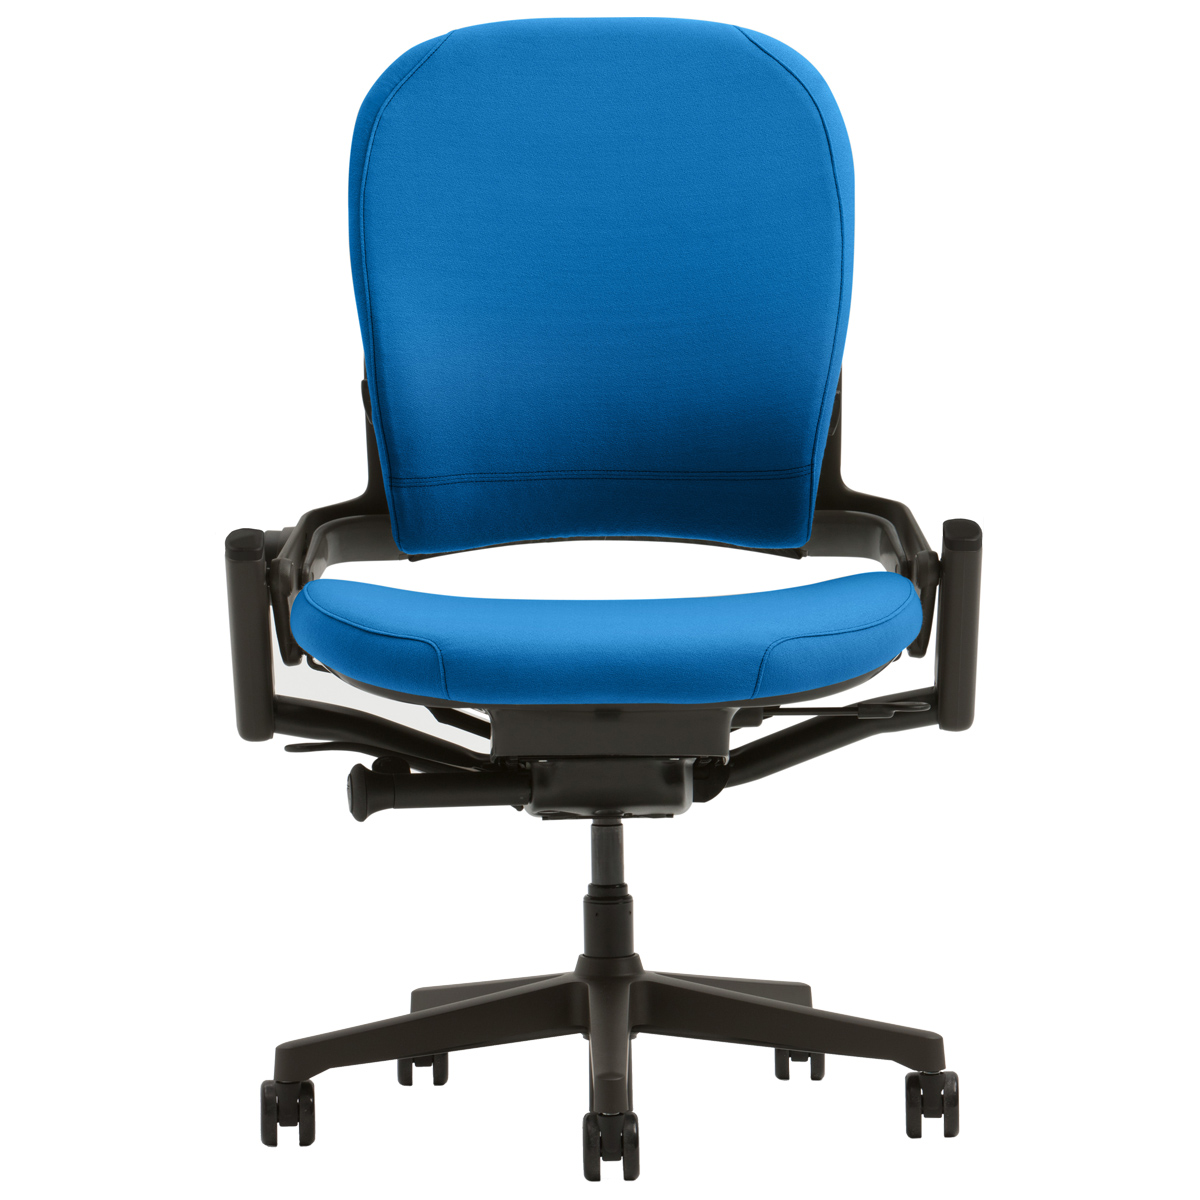 Fauteuils Steelcase Chaise Steelcase Best Prio Highback Office Chair With